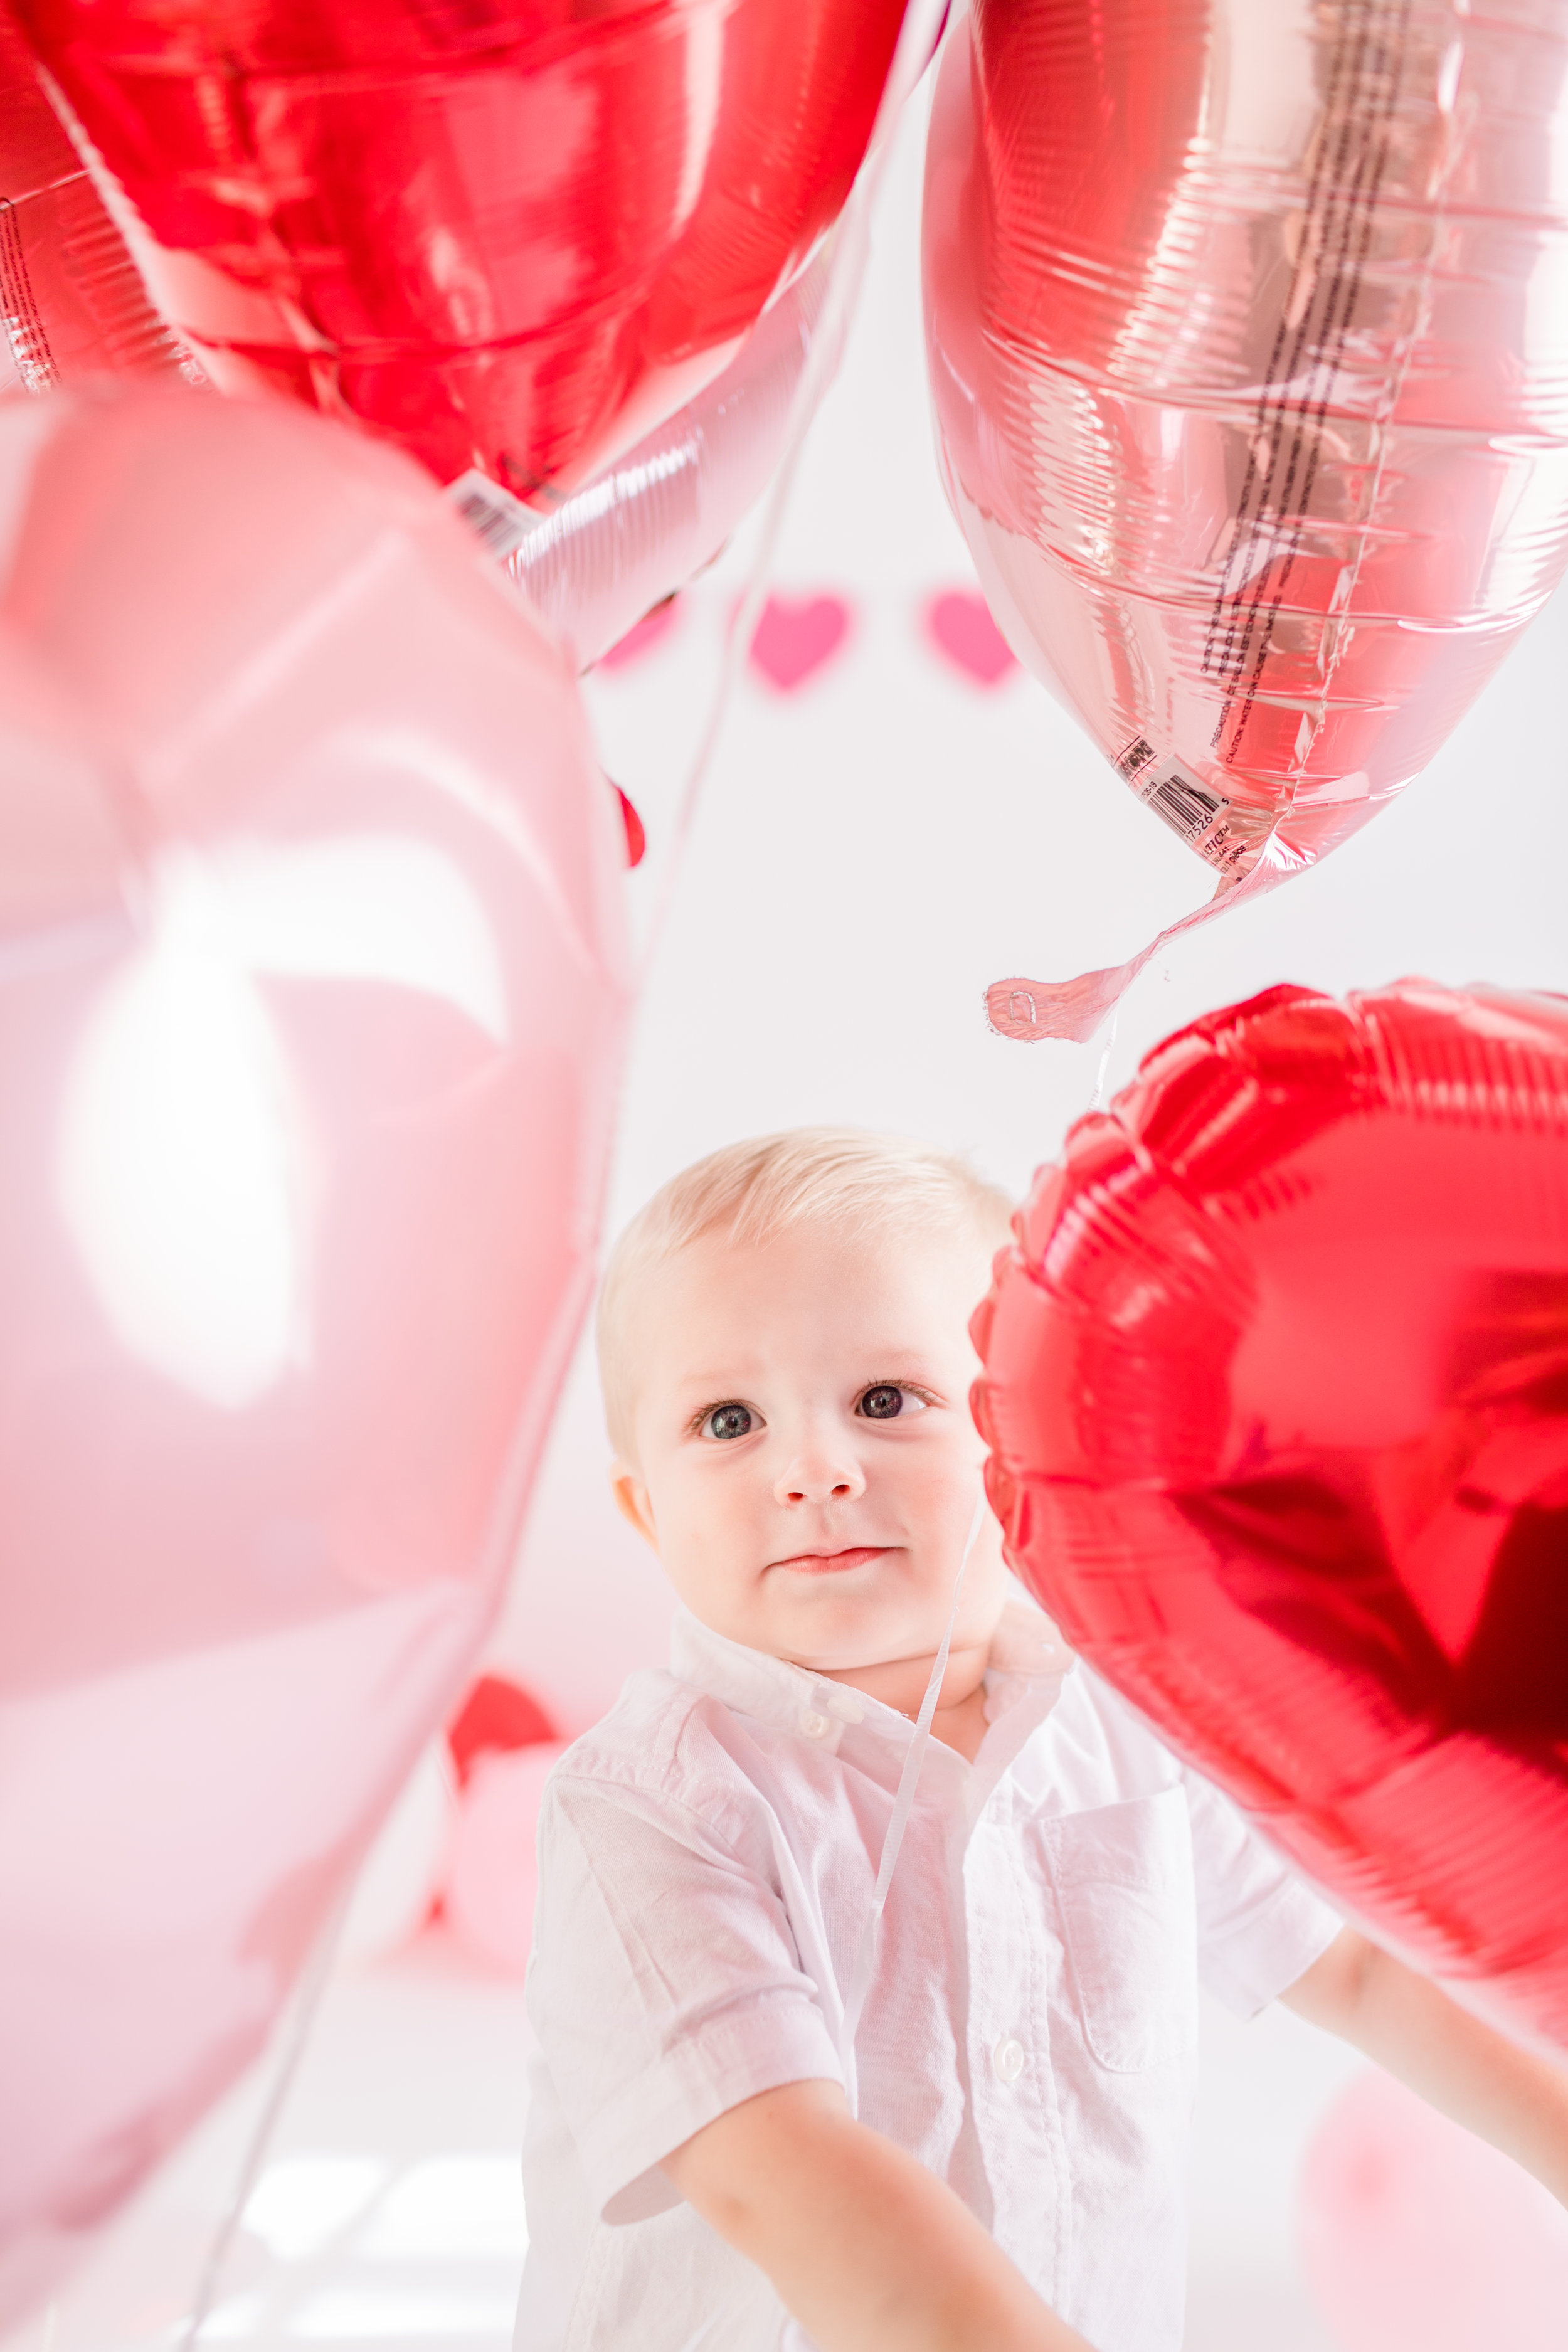 valentines-day-balloons-cute-baby-photos